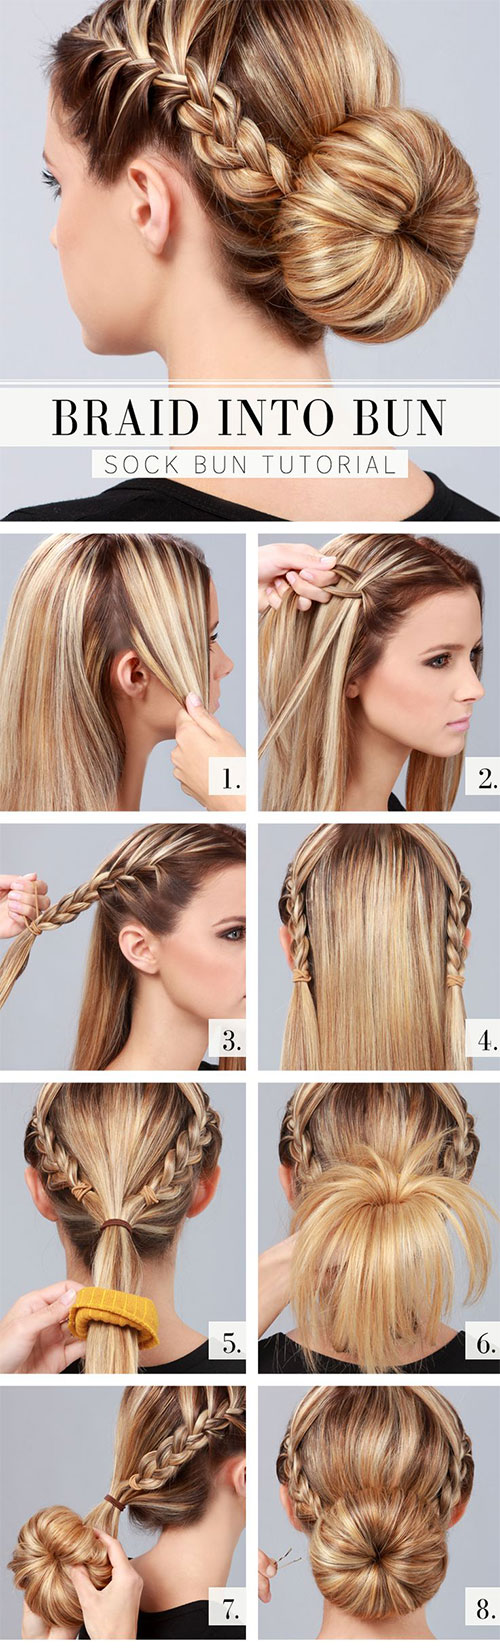 12 Step By Step Summer Hairstyle Tutorials For Beginners ...